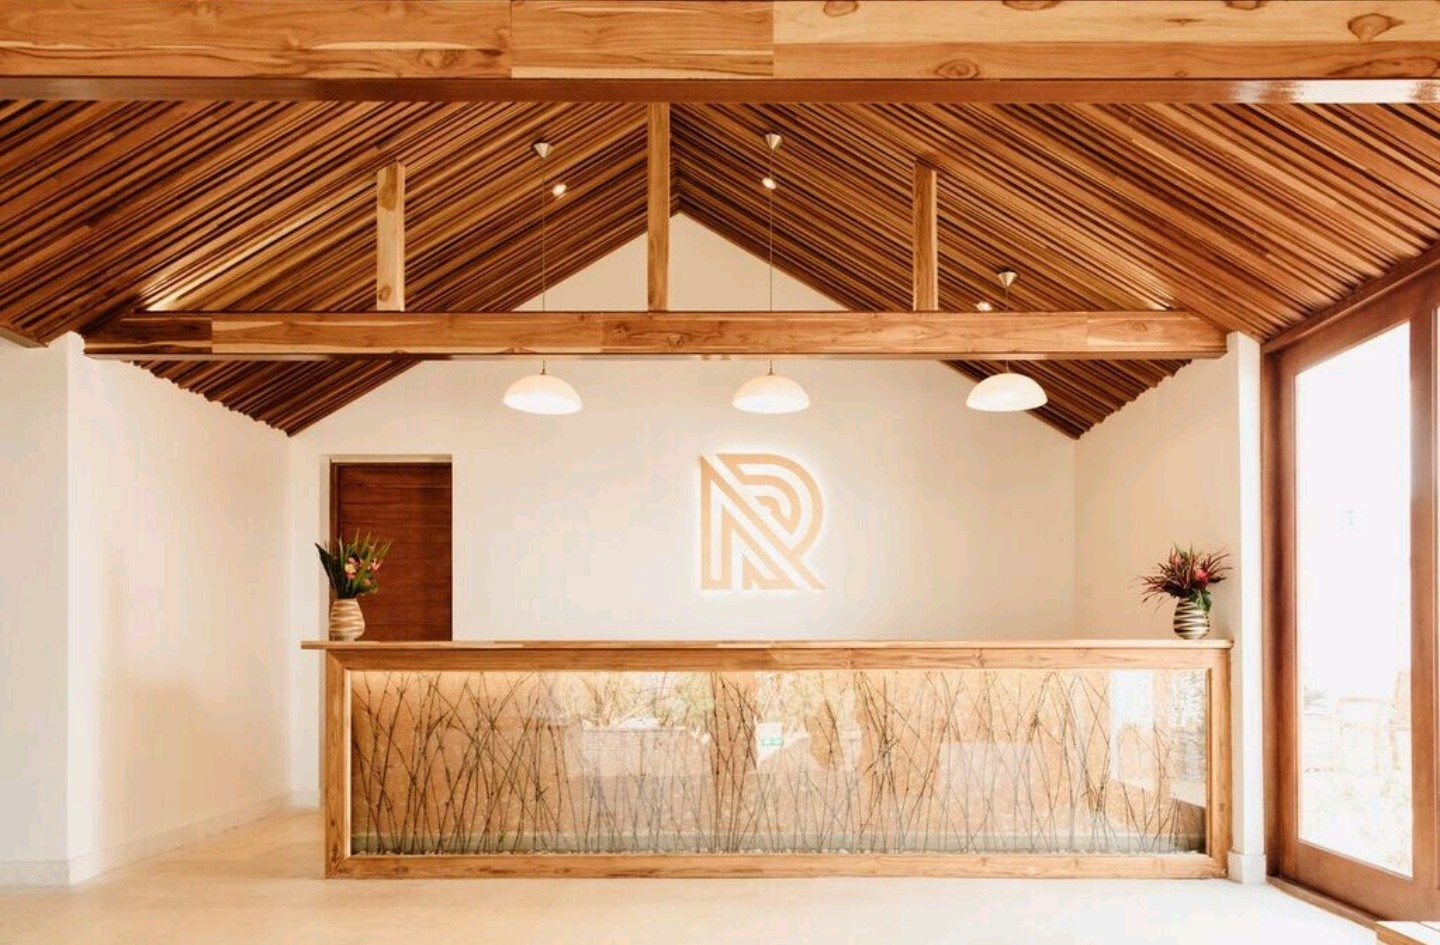 The Retreat foyer